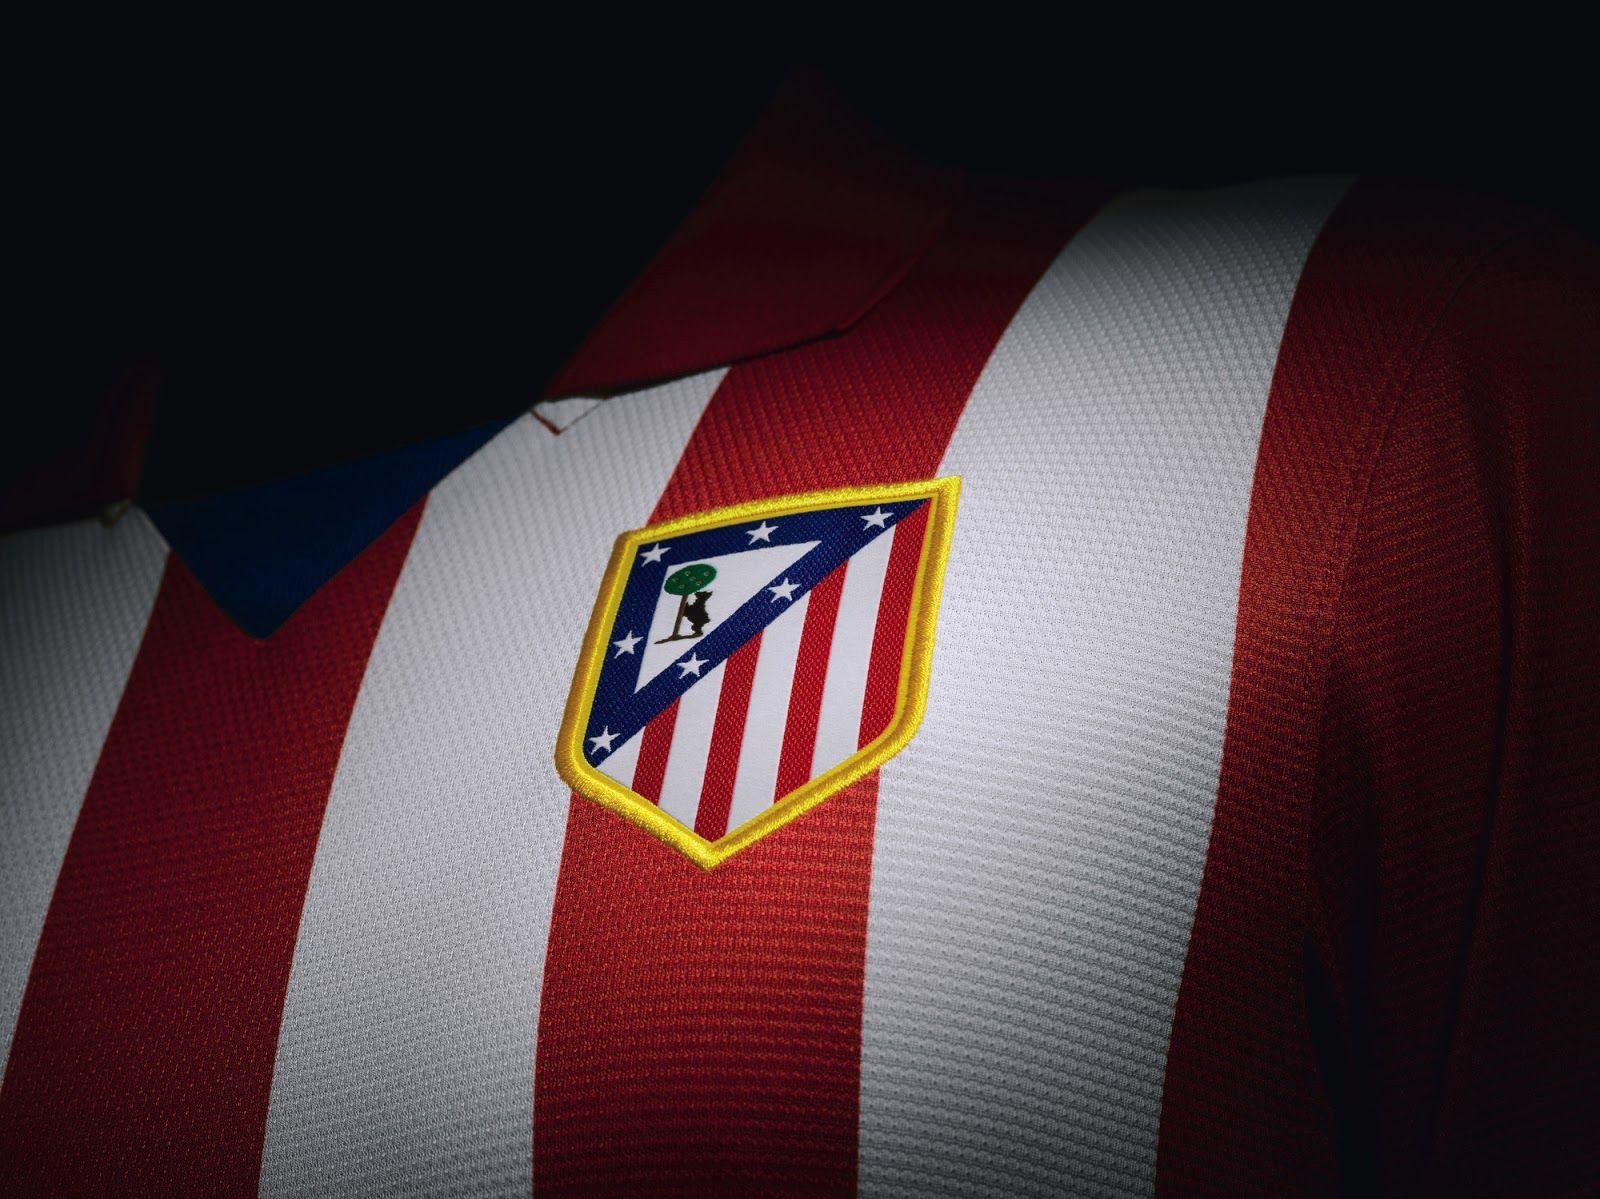 Atletico Madrid Professional Spanish Football Club Background Images